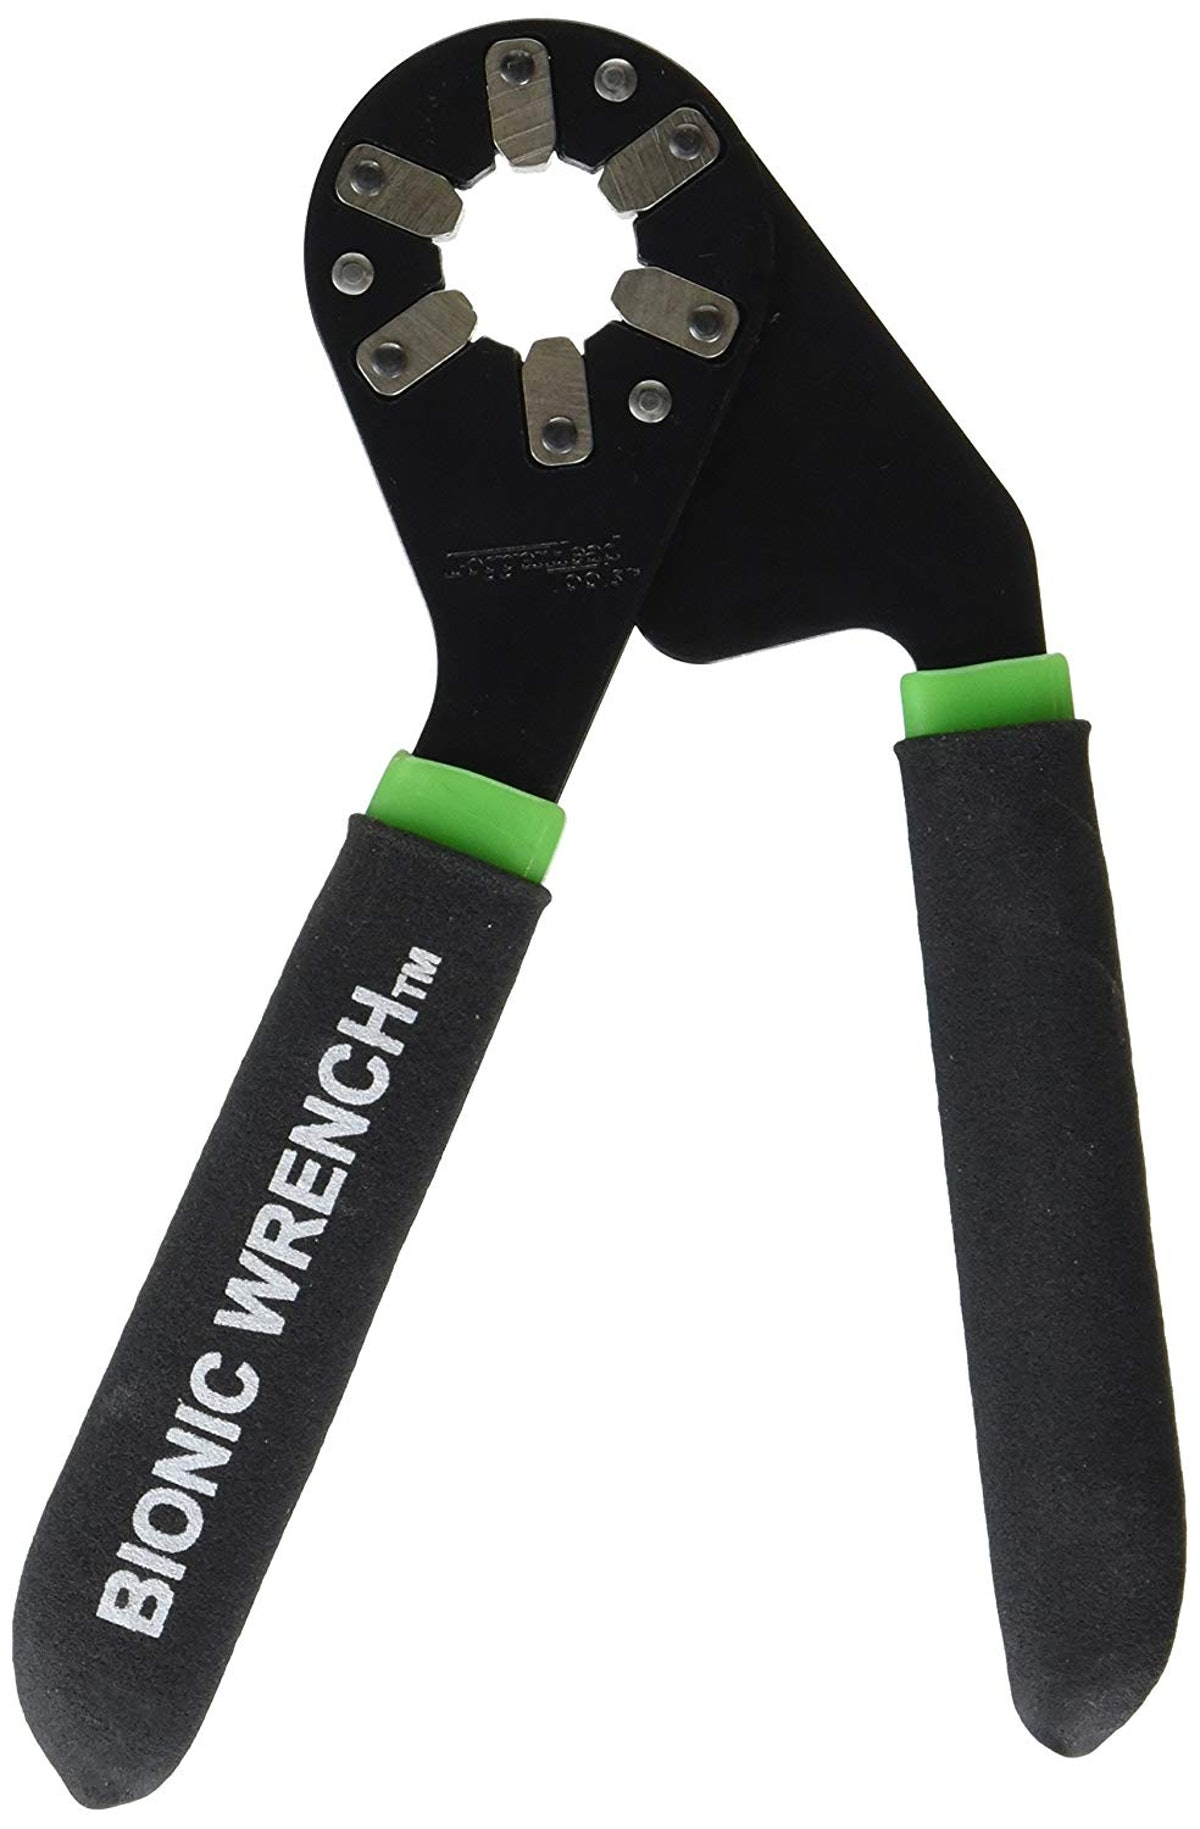 Logger Head Tools BW8-01R-01 Bionic Wrench 8-Inch